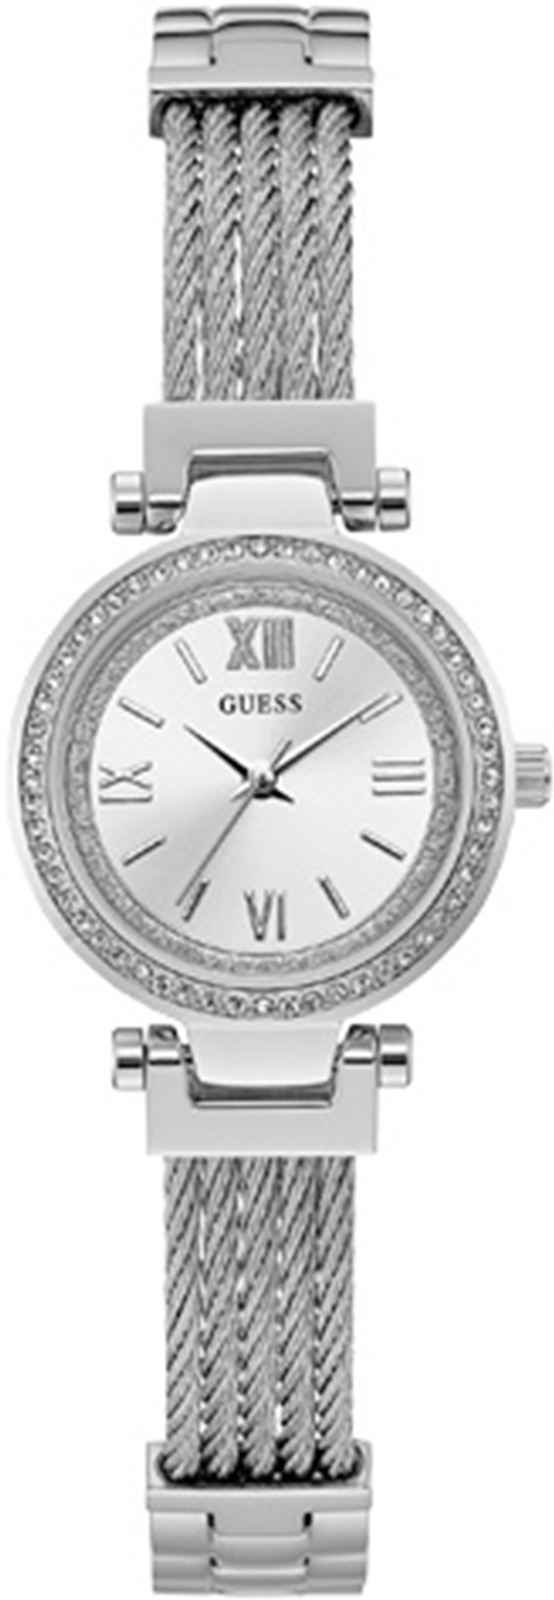 Часы Guess MINI SOHO часы guess soho